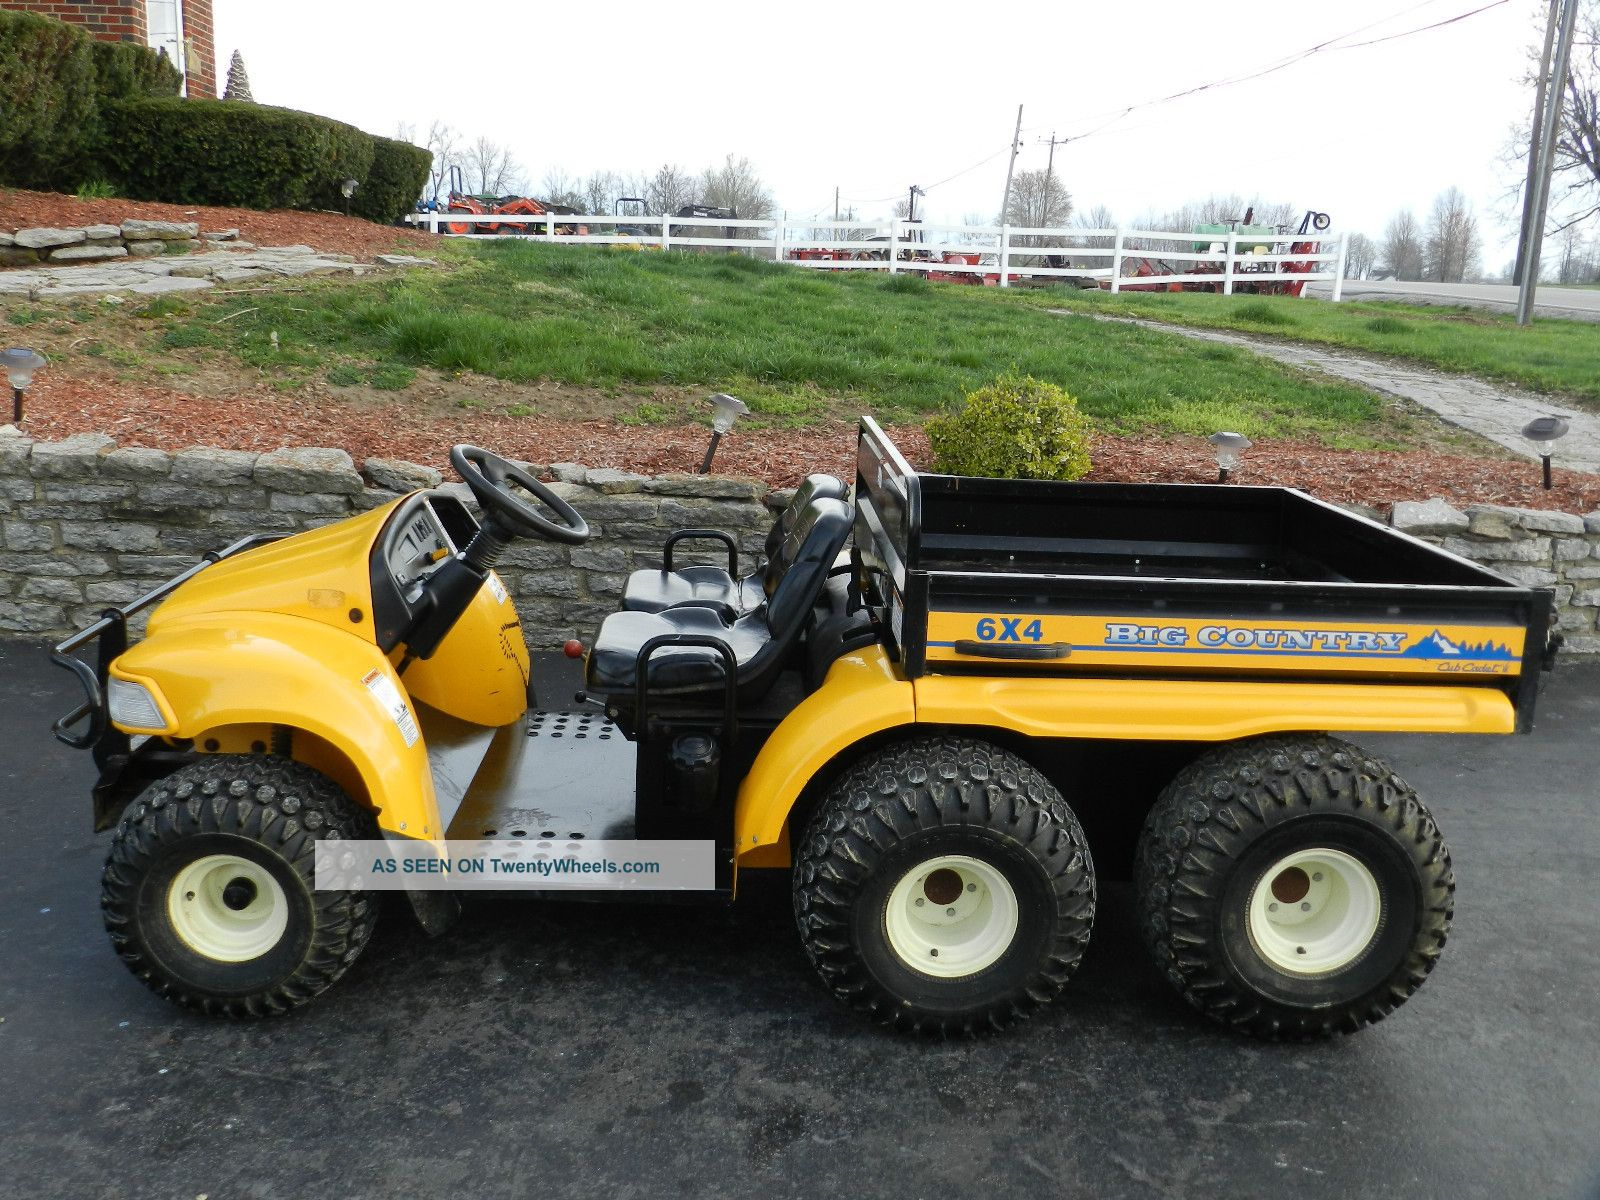 Gator Cub Cadet - Big Country 6x4 - Utv - 723 Hours Utility Vehicles photo